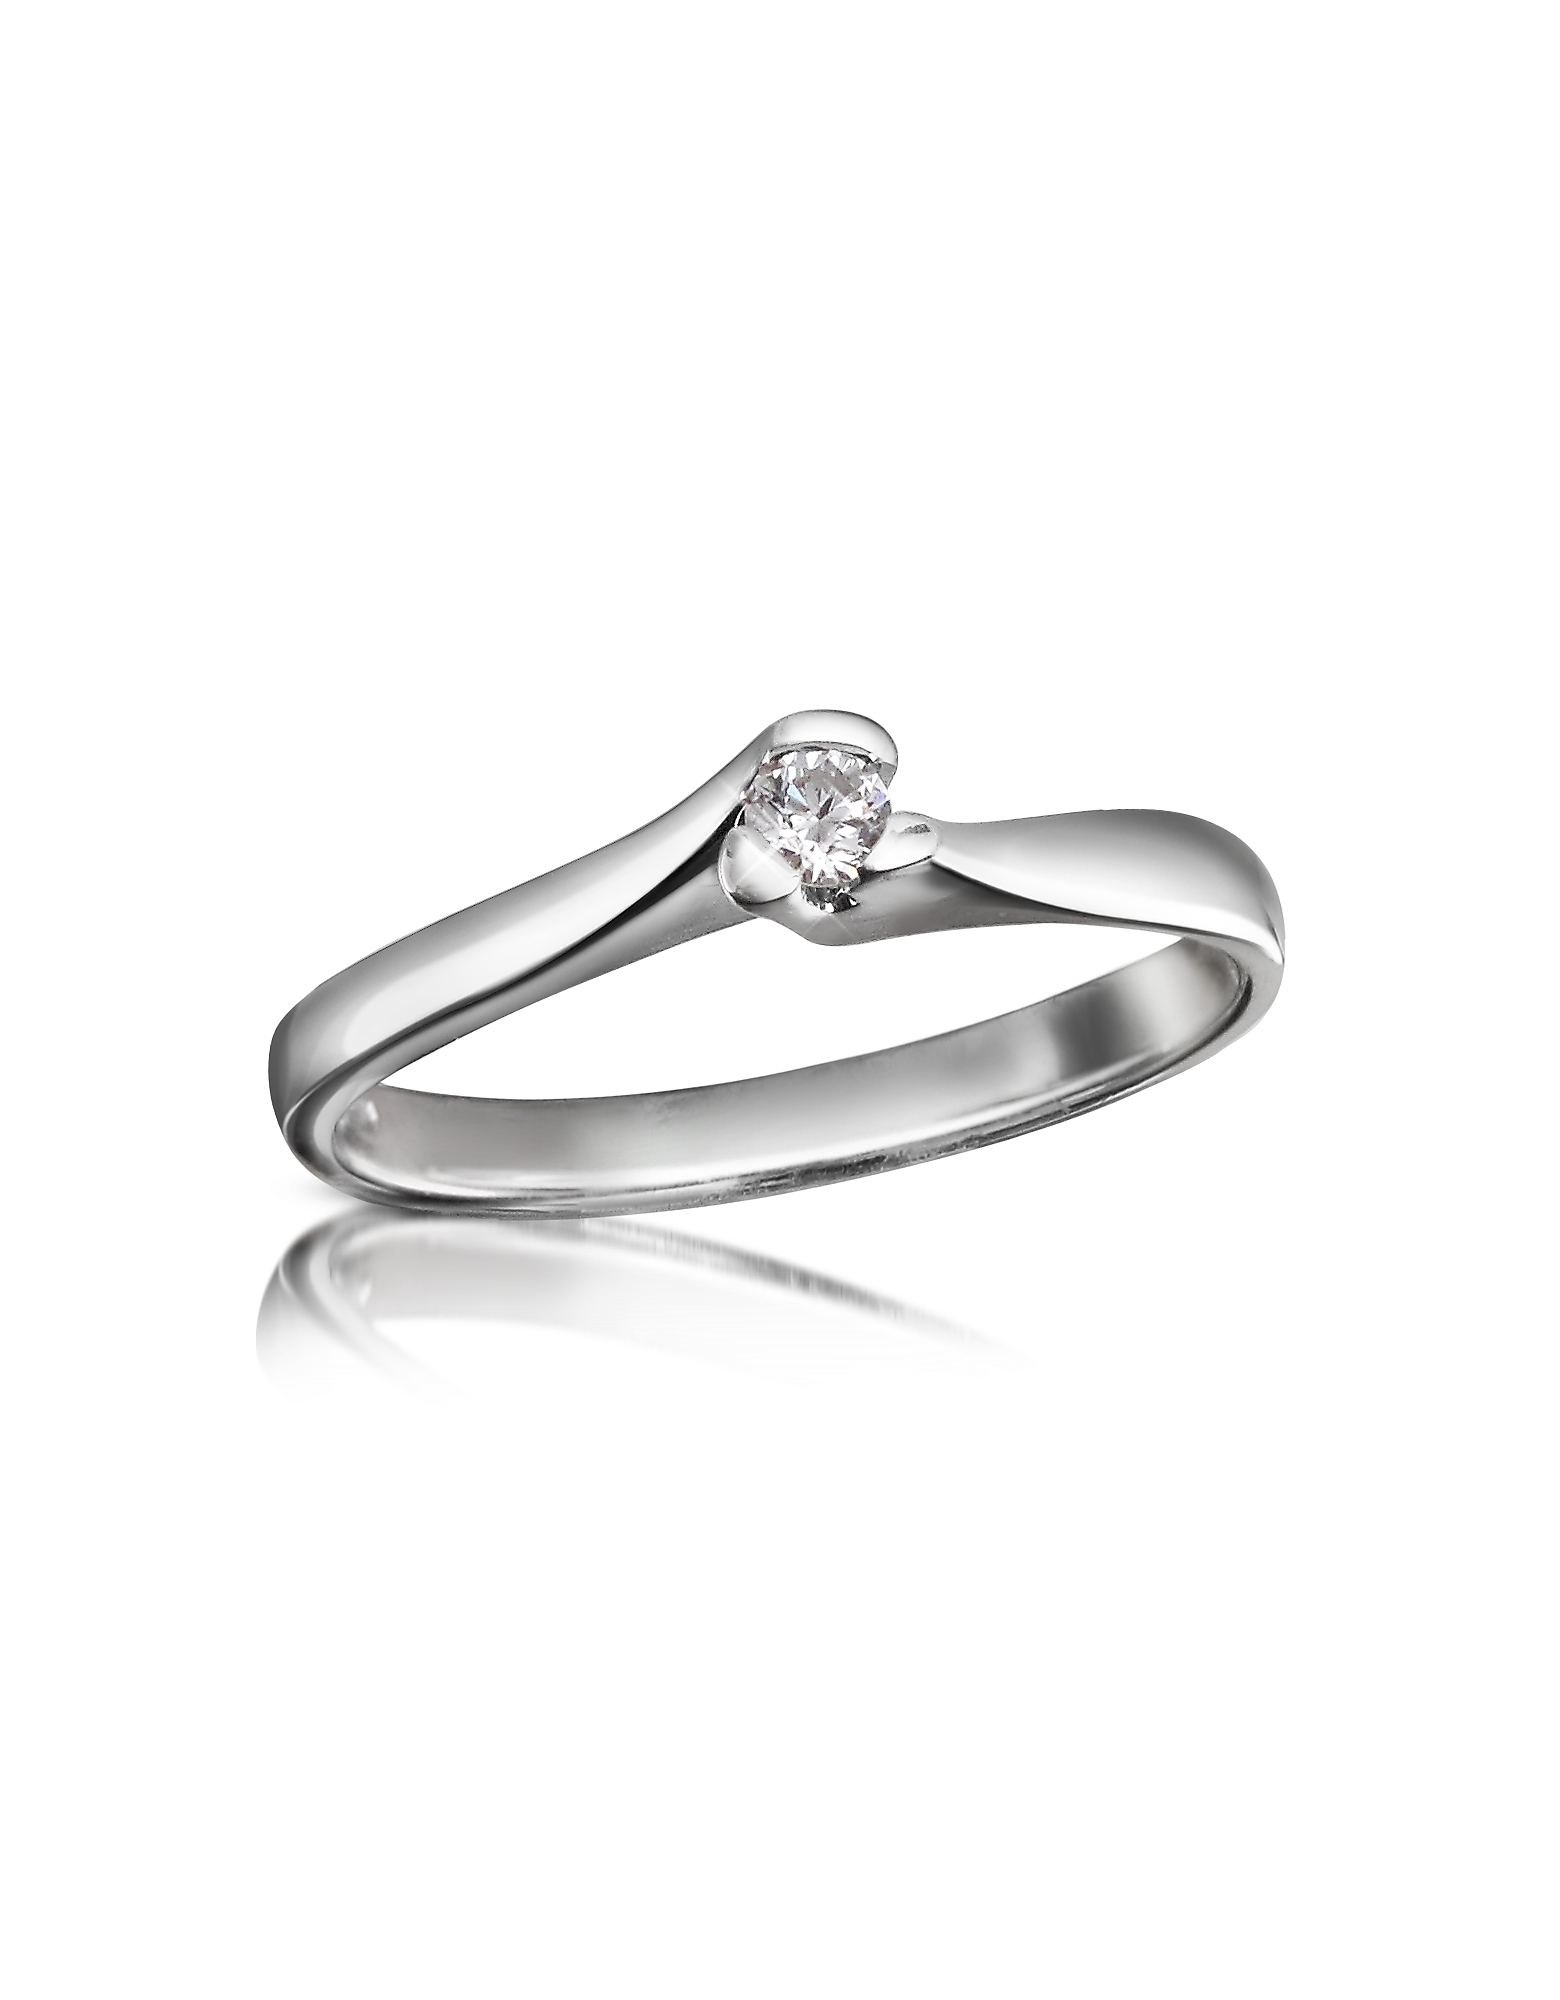 Forzieri Rings, 0.08 ctw Diamond Solitaire Ring